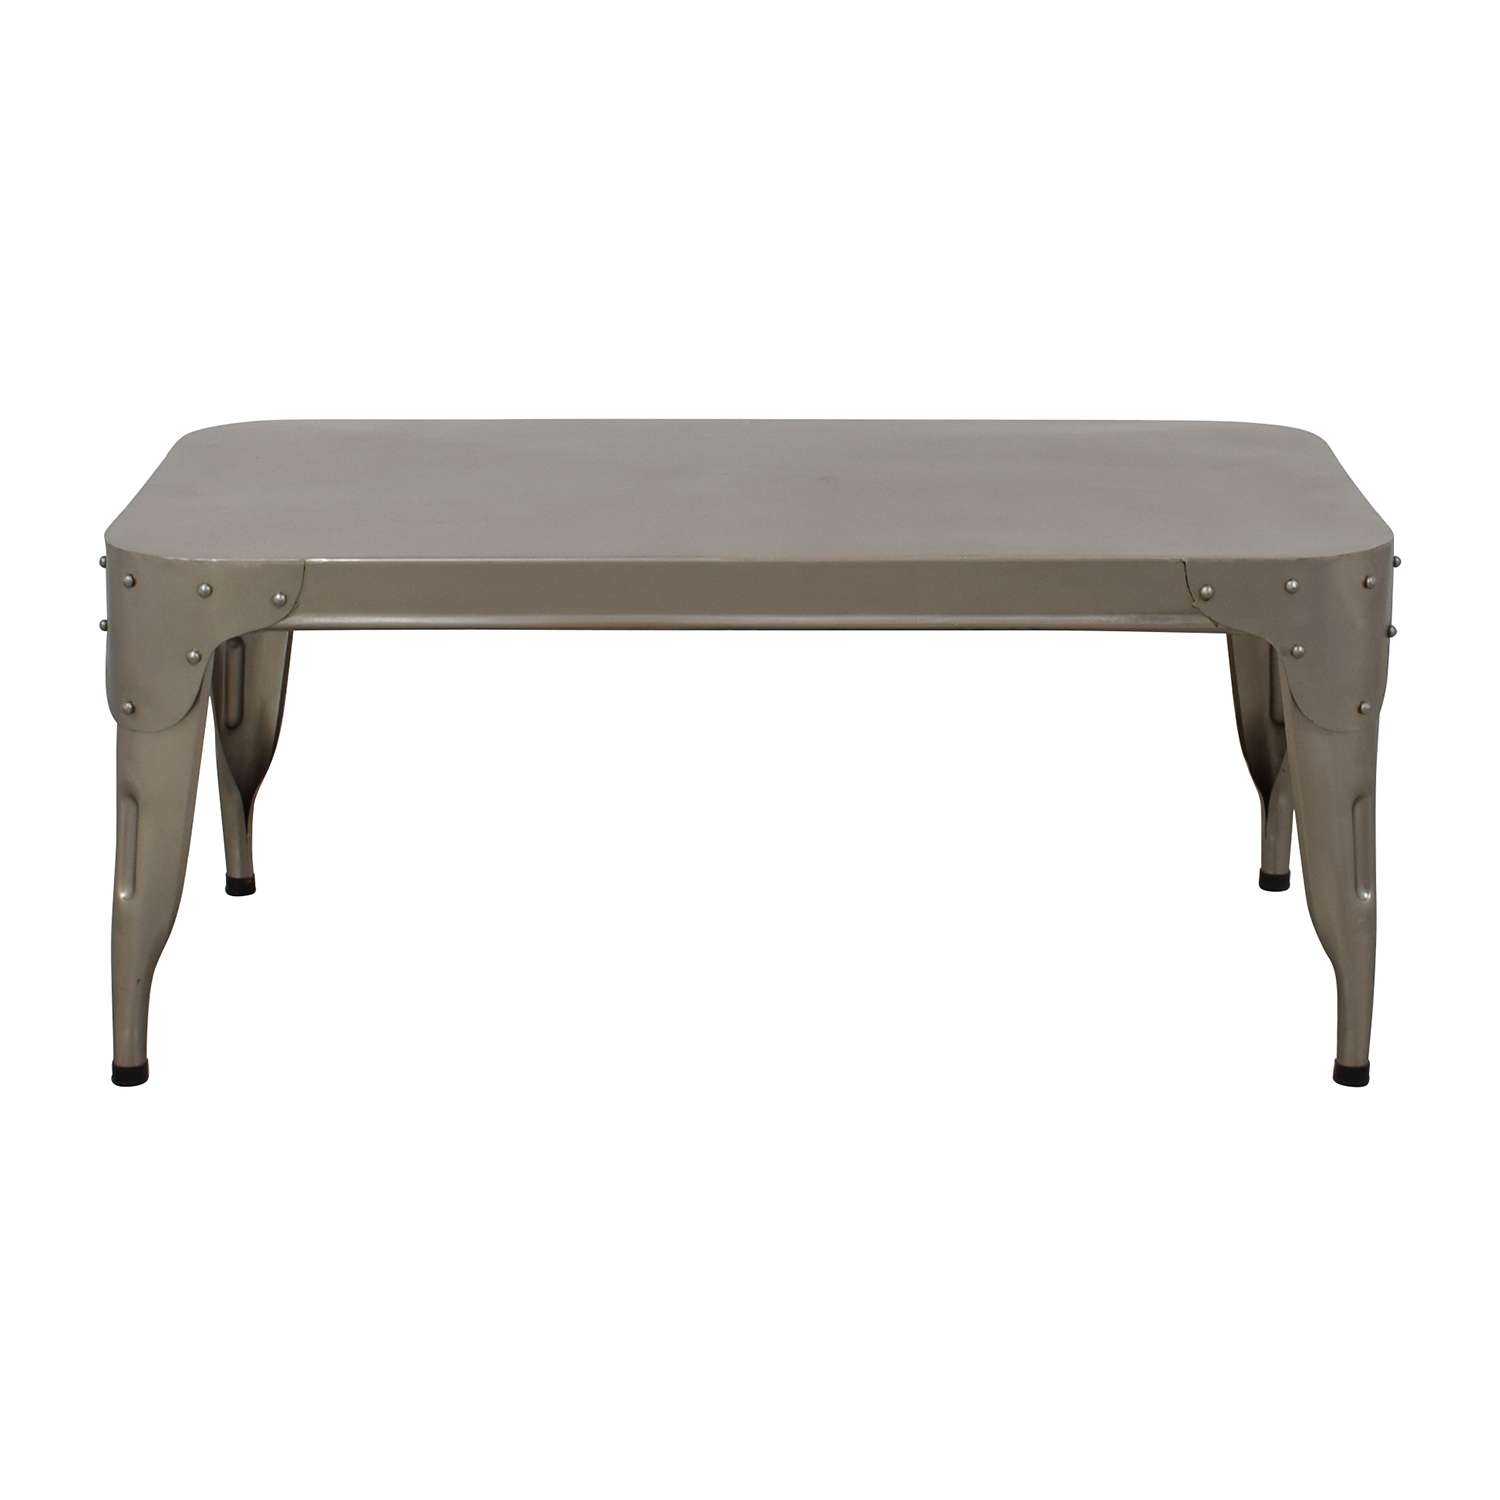 [%Most Current Joss And Main Coffee Tables Intended For 90% Off – Joss & Main Joss & Main Holyoke Bunching Coffee Table|90% Off – Joss & Main Joss & Main Holyoke Bunching Coffee Table In Well Known Joss And Main Coffee Tables%] (View 2 of 20)